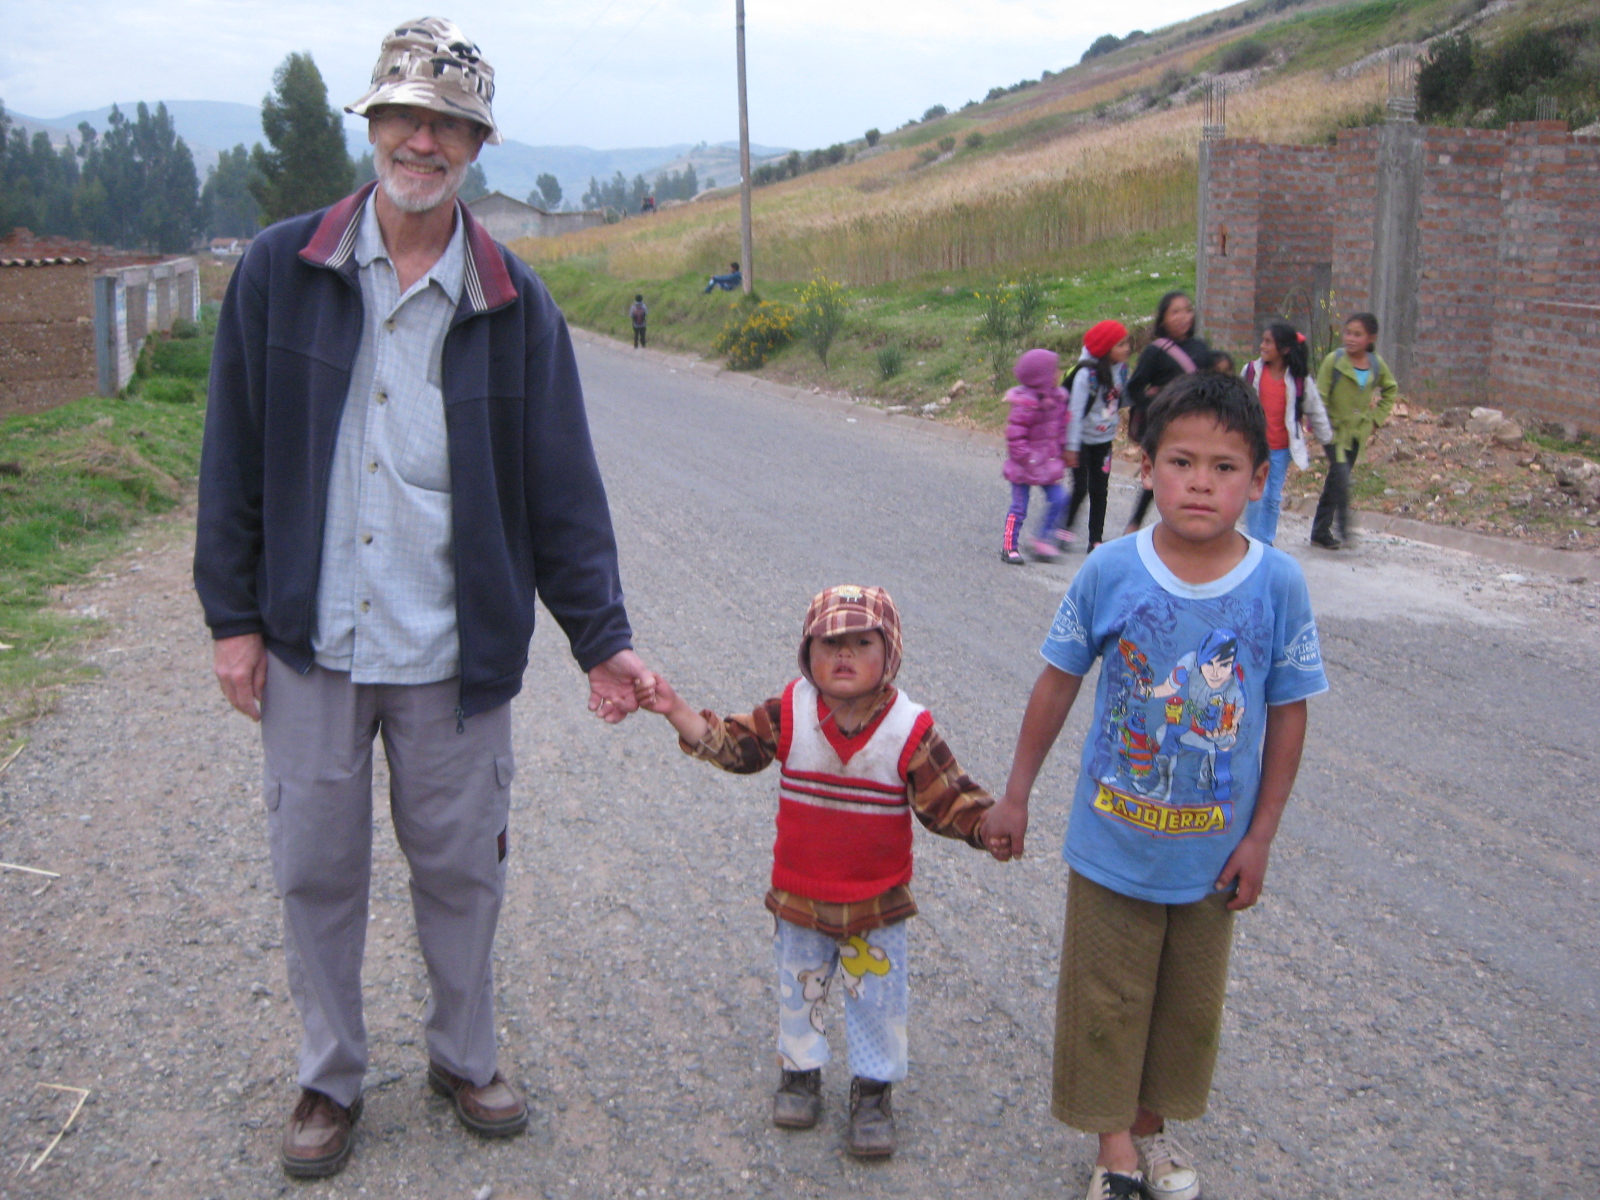 Lance going with children to the ruins near the school